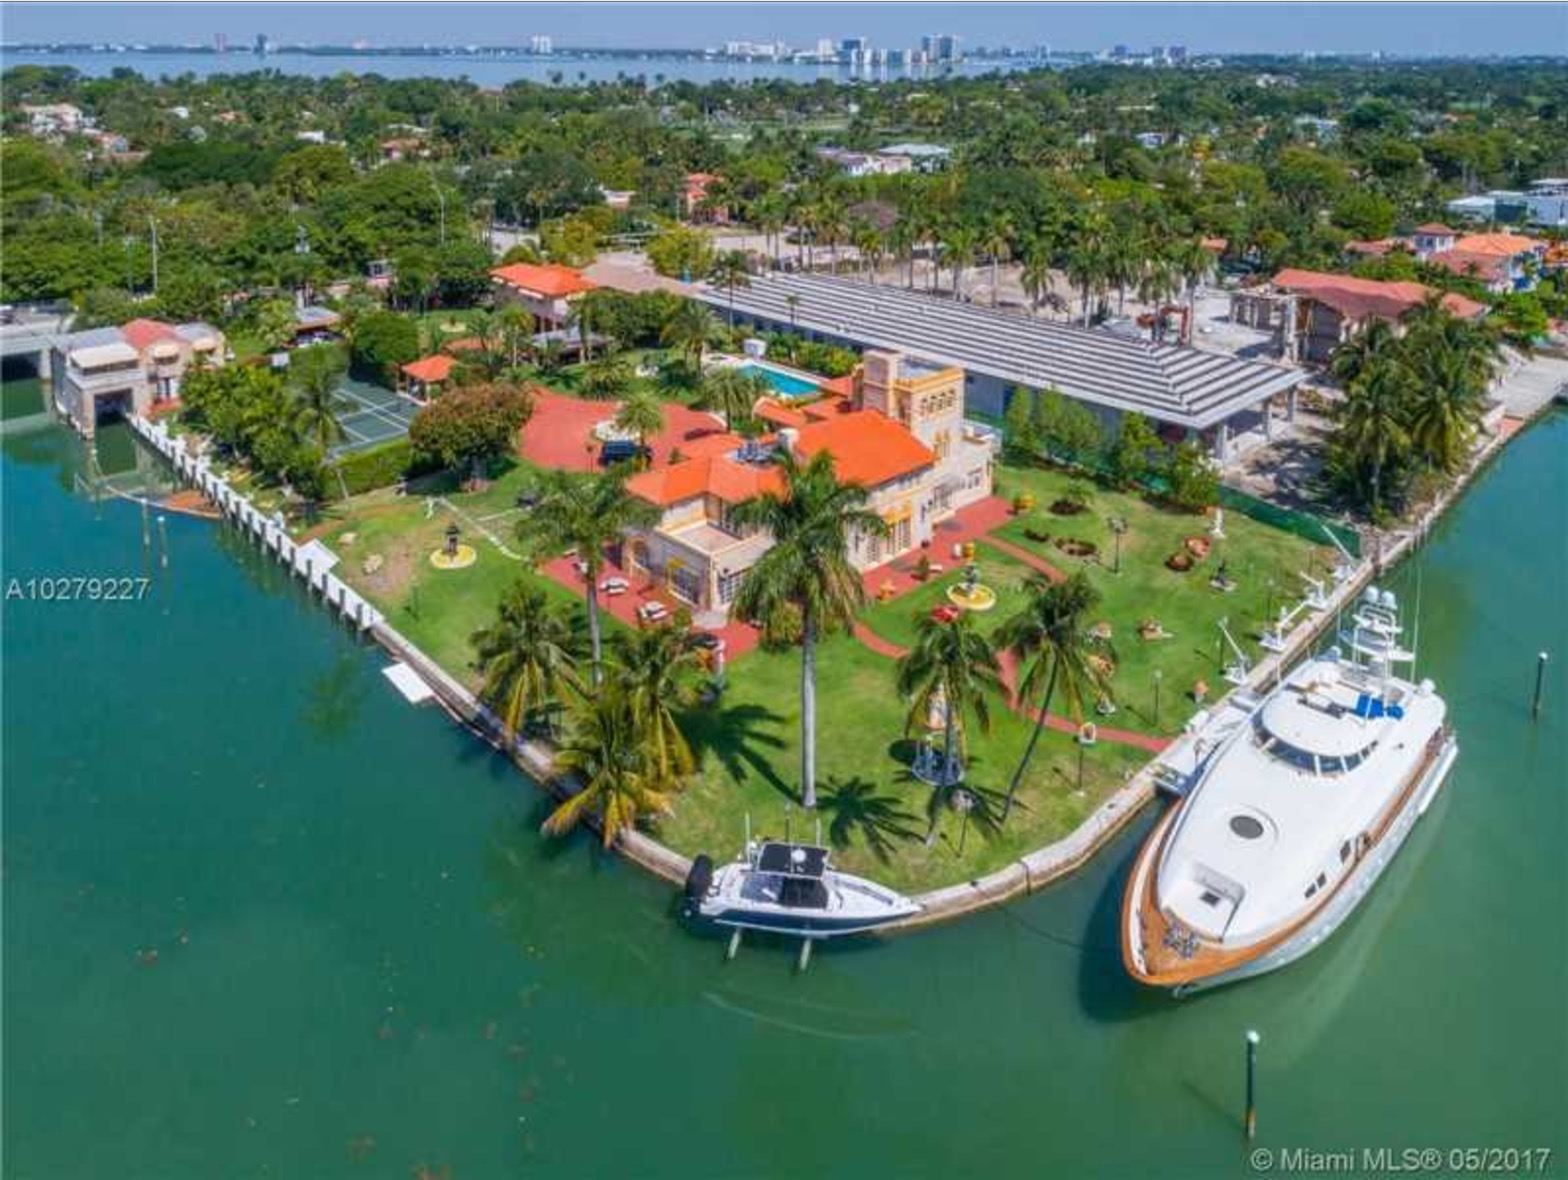 Find A Quick Way to Locate the Best House For Sale In Miami Beach